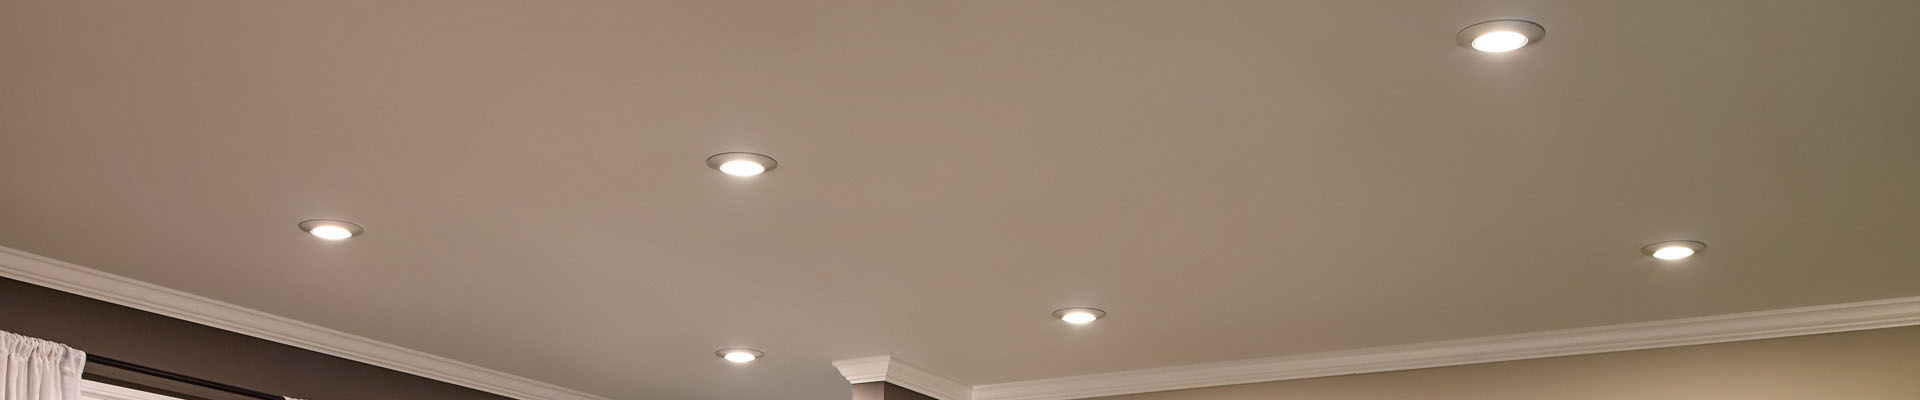 Horizon LED Downlights